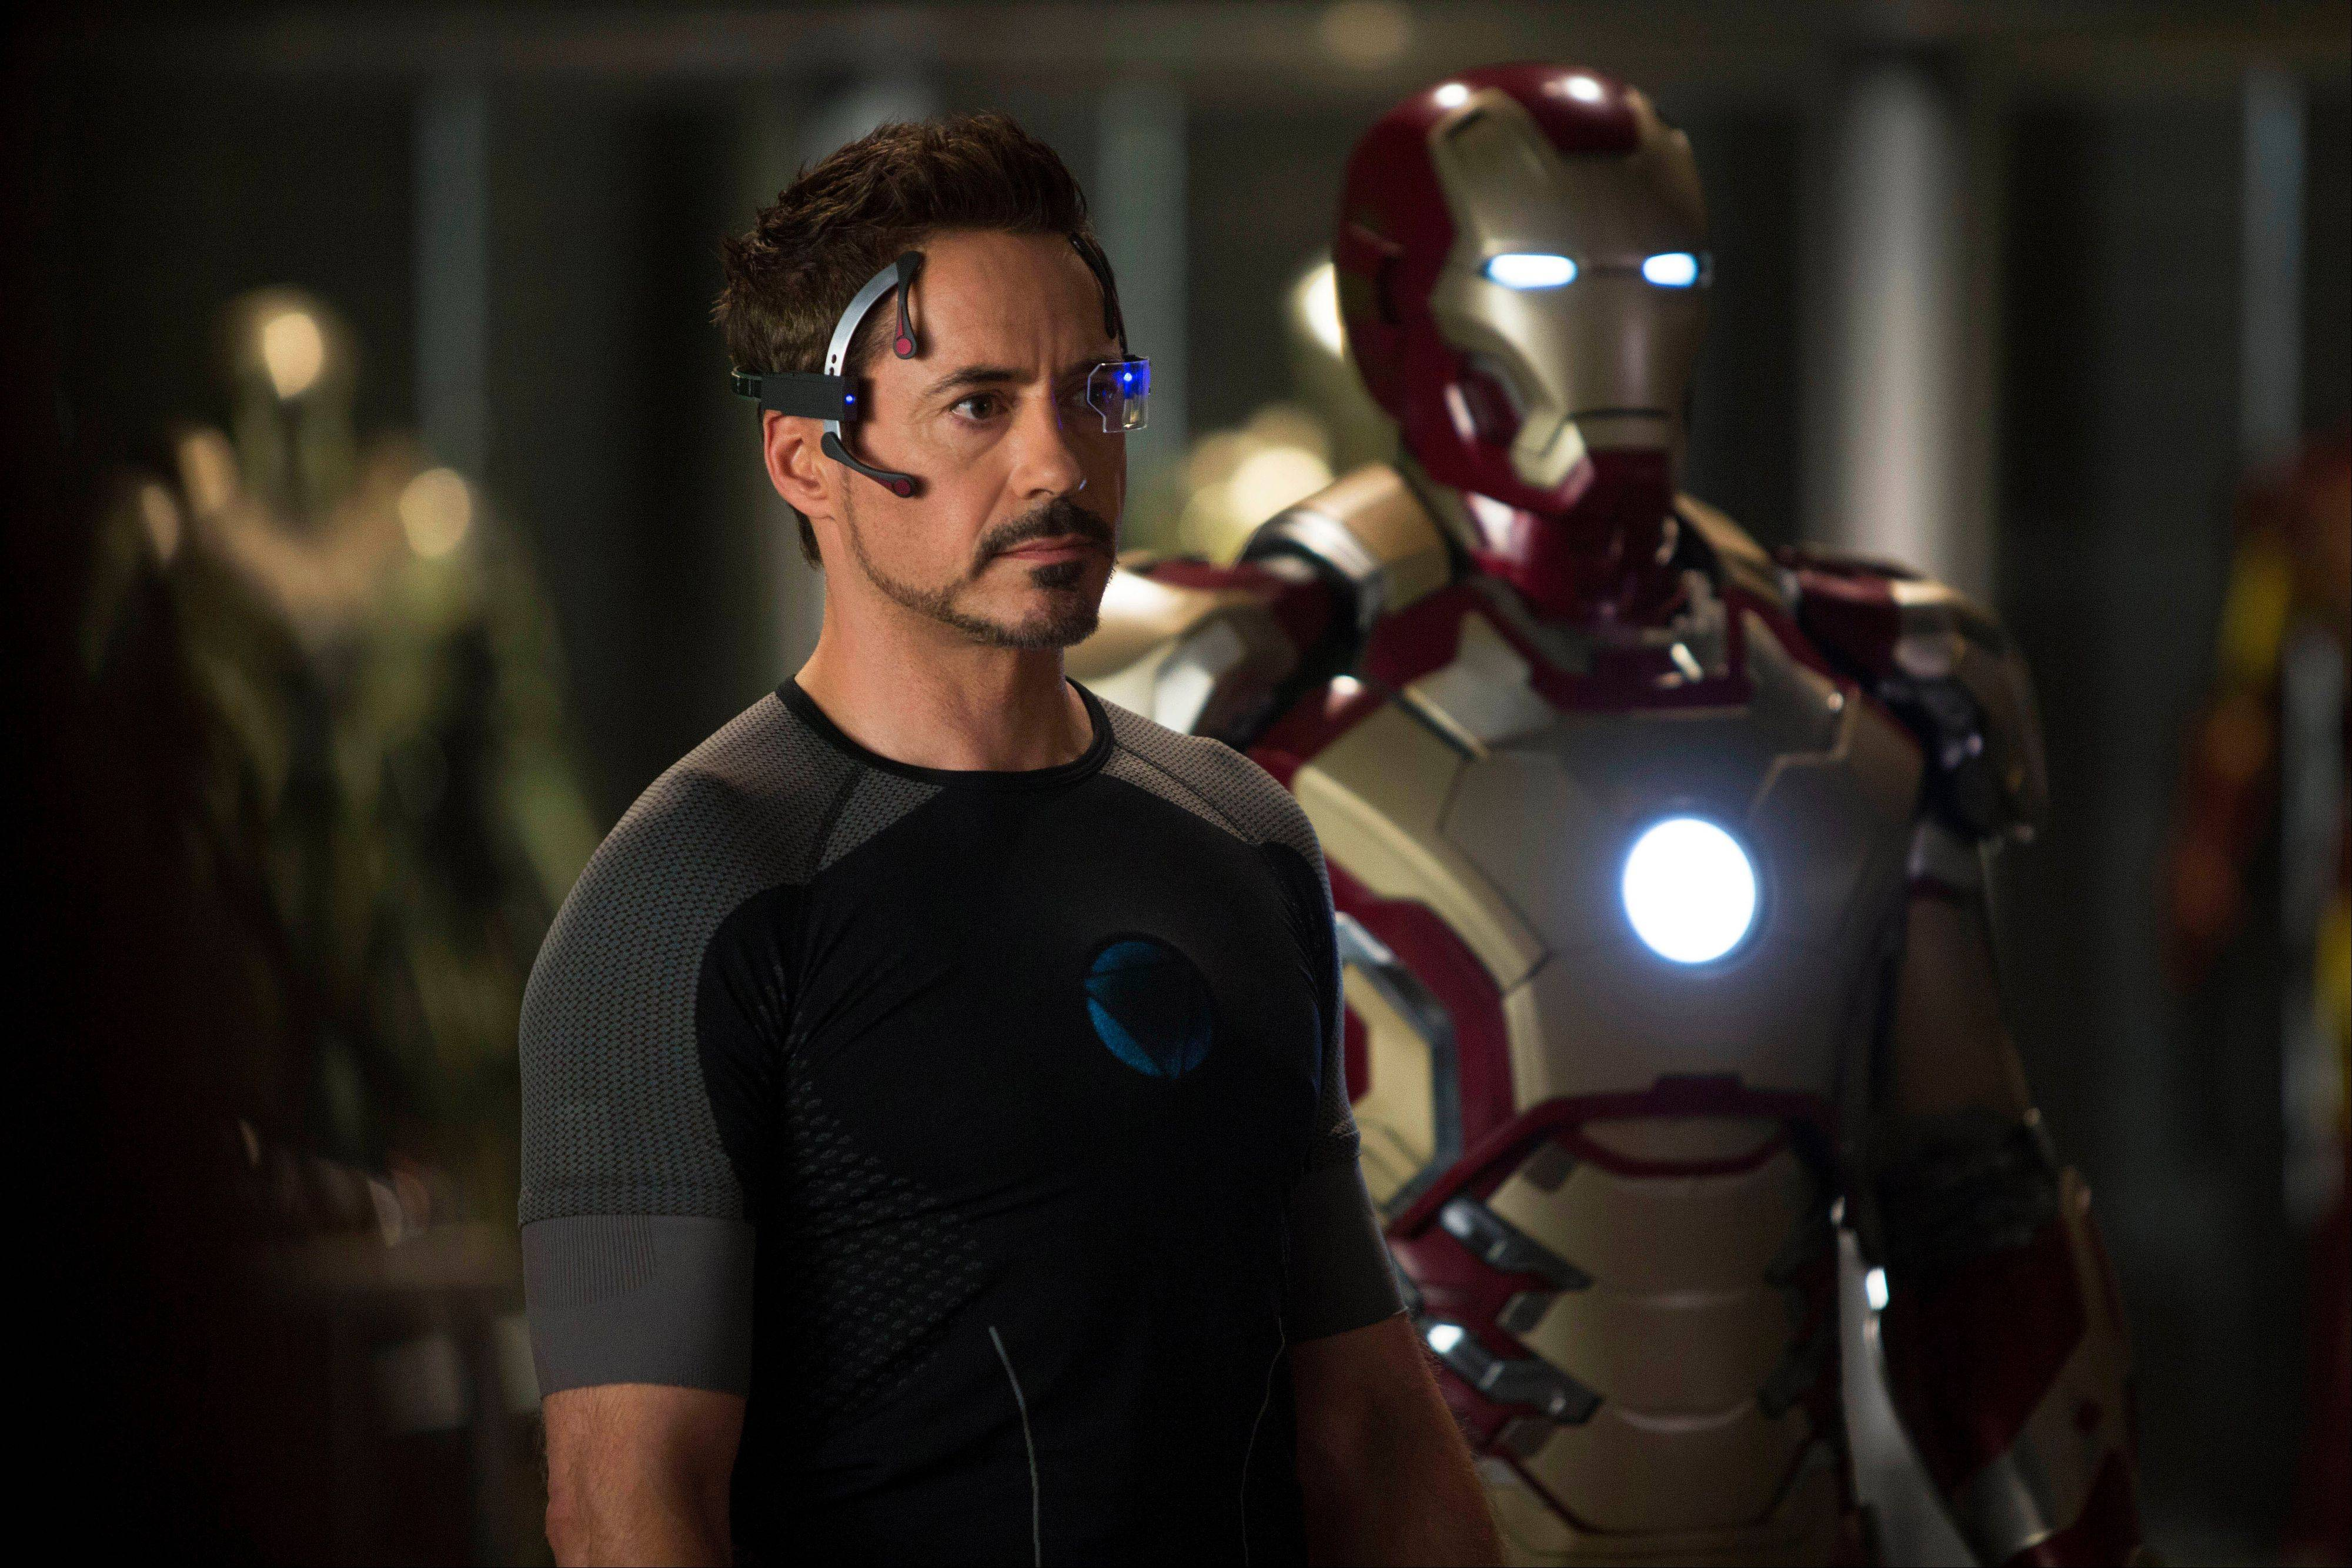 """Iron Man 3"" was one of several upcoming films to receive spotlight treatment with an ad that aired during Super Bowl XLVII."